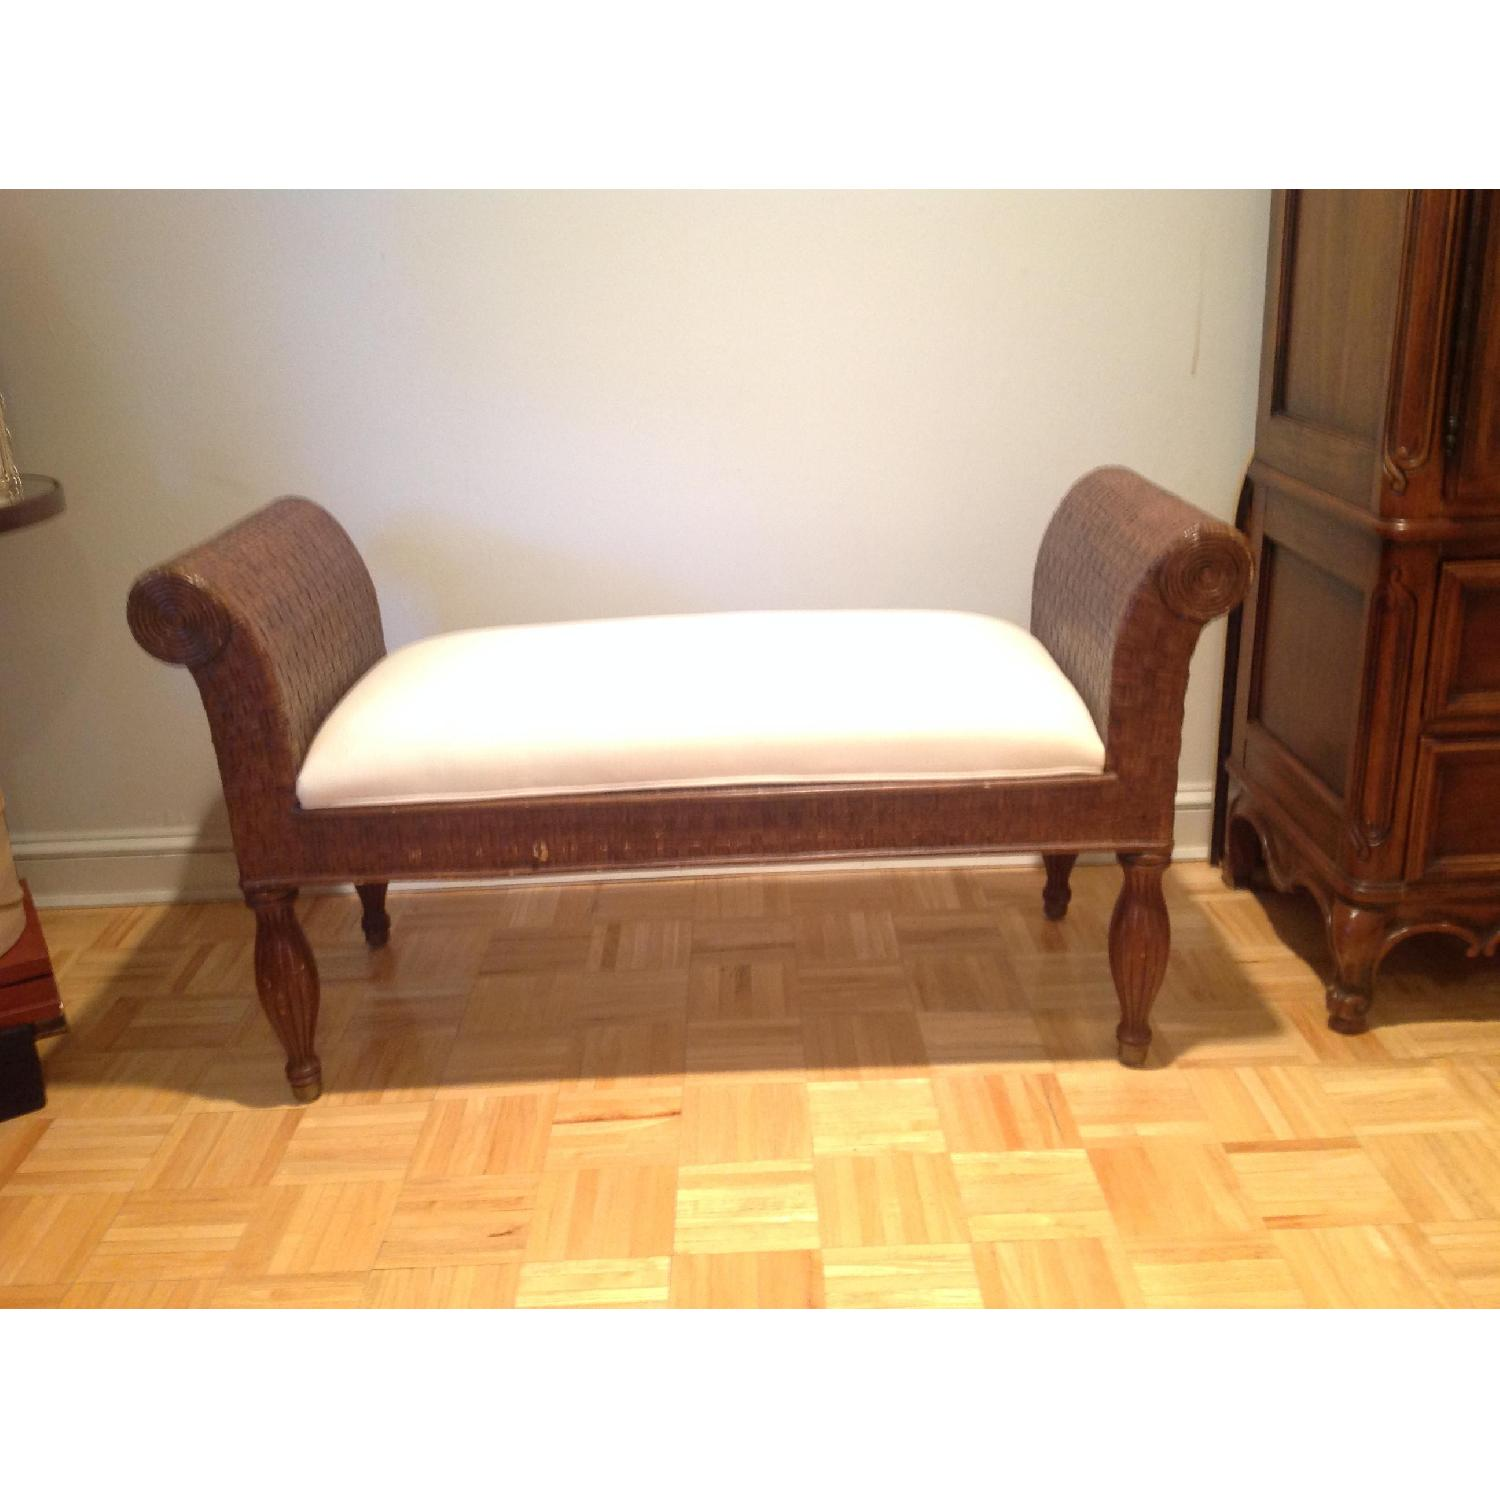 Ethan Allen Wicker Bench - image-2